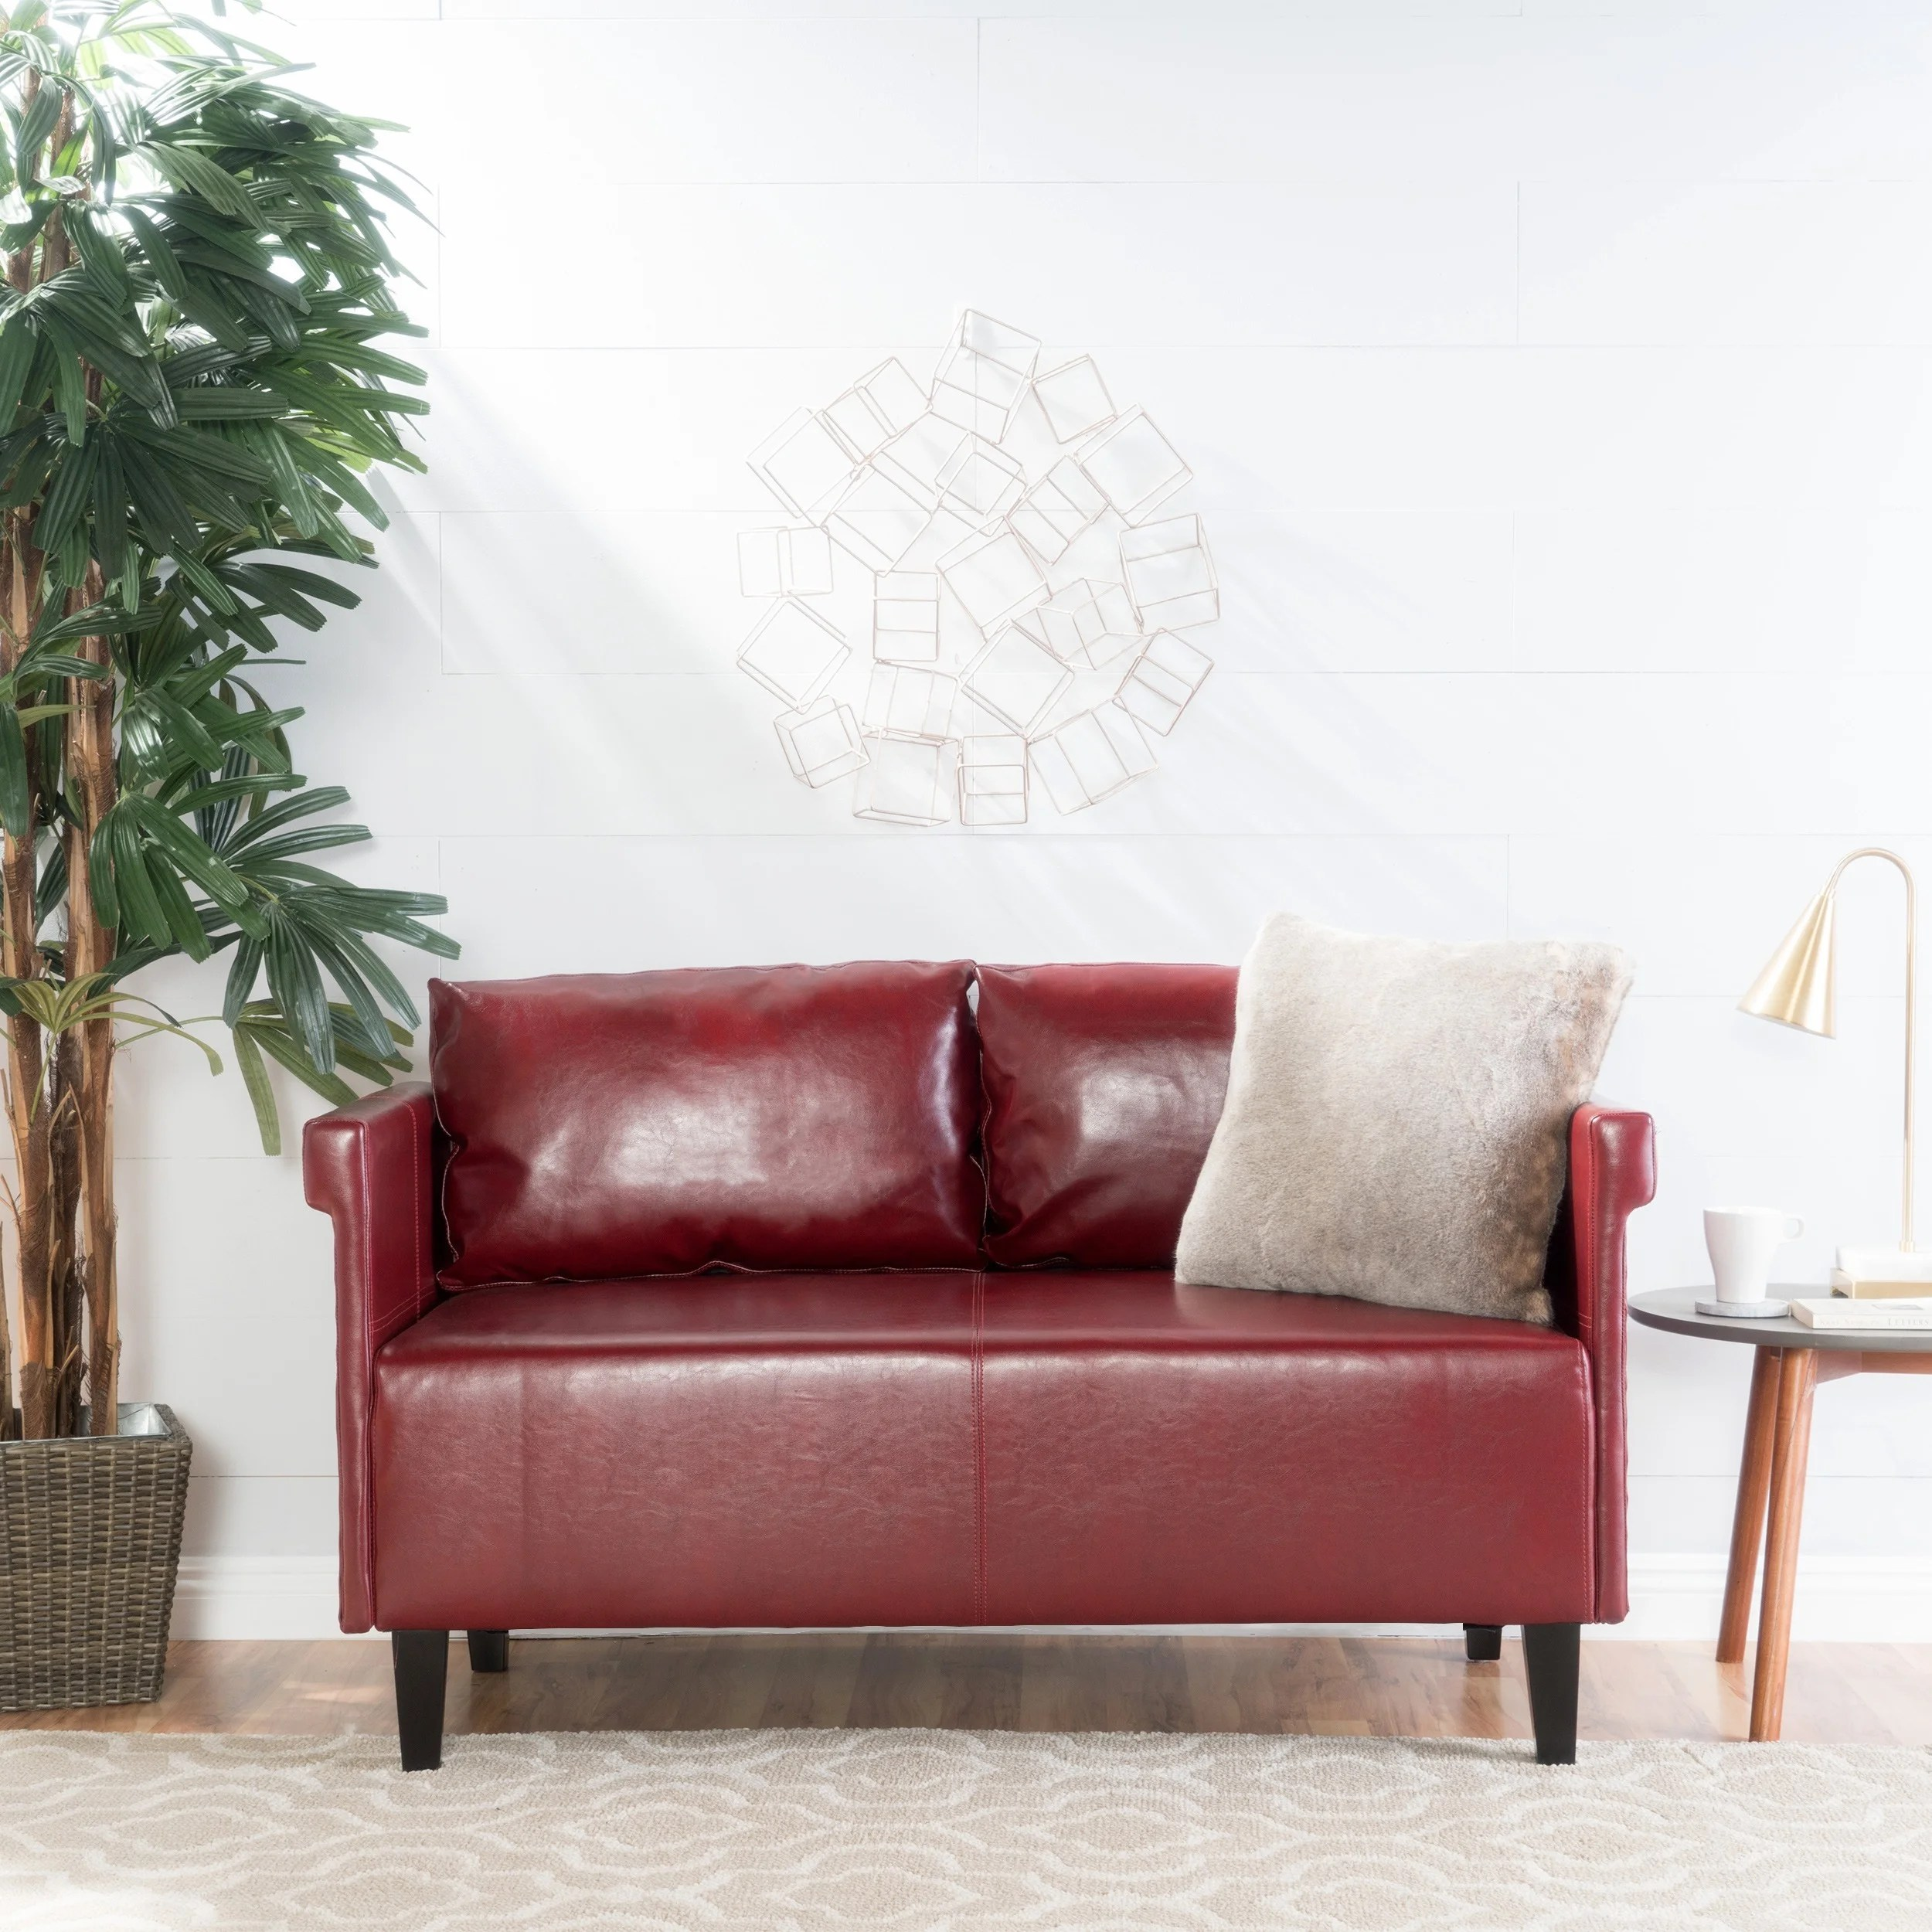 couch sofa settee difference ashley convertible setee thomasville barcelona tufted back ...